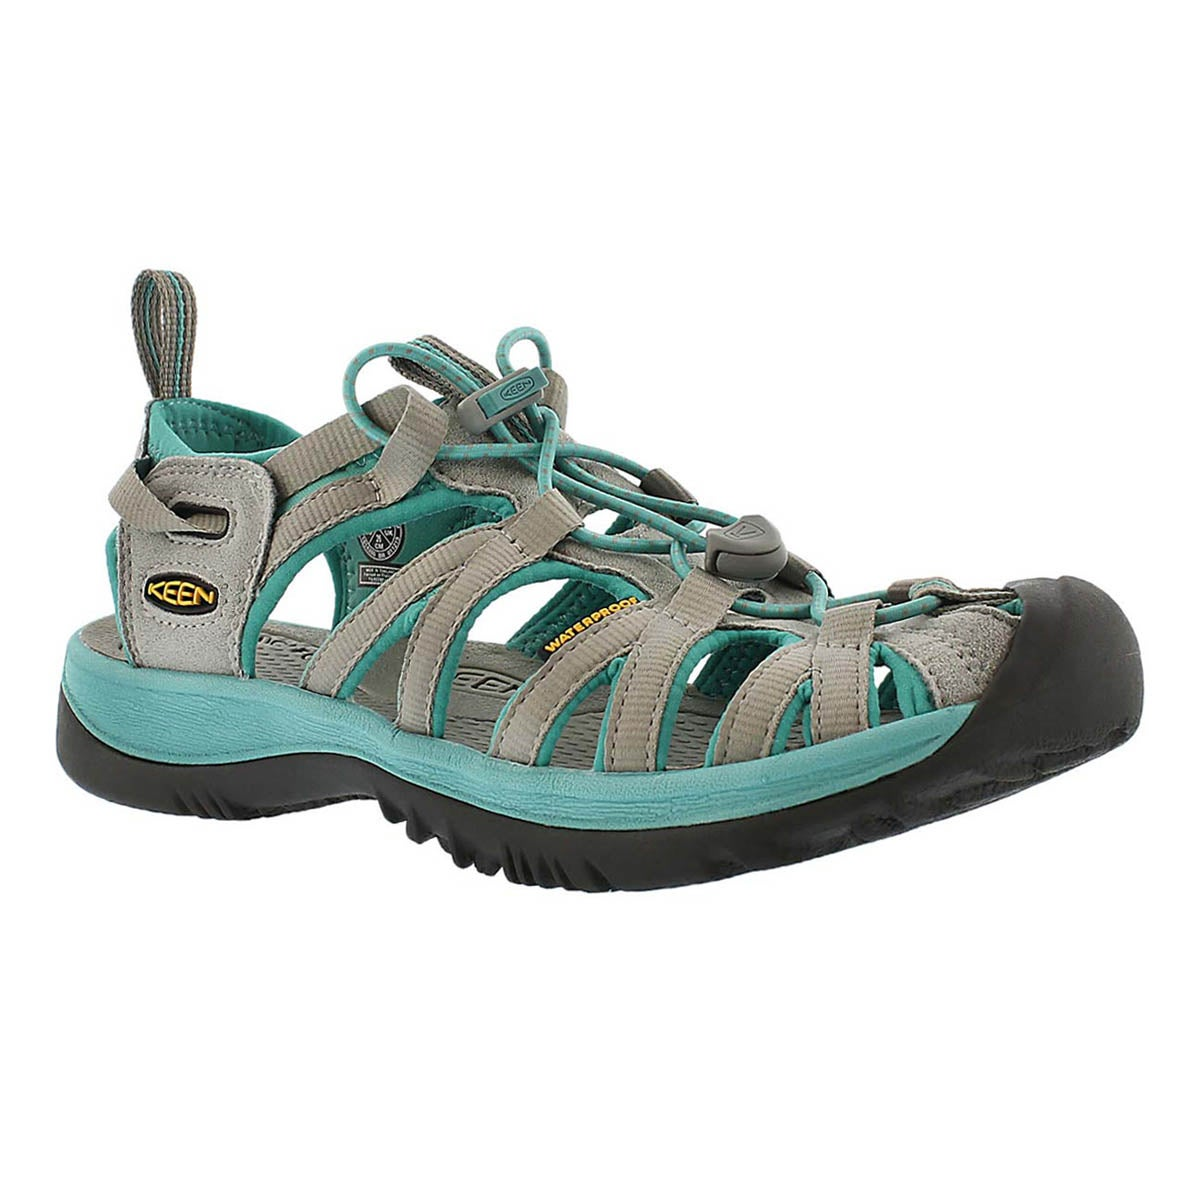 Womens Sport Sandals With Excellent Style Playzoa Com